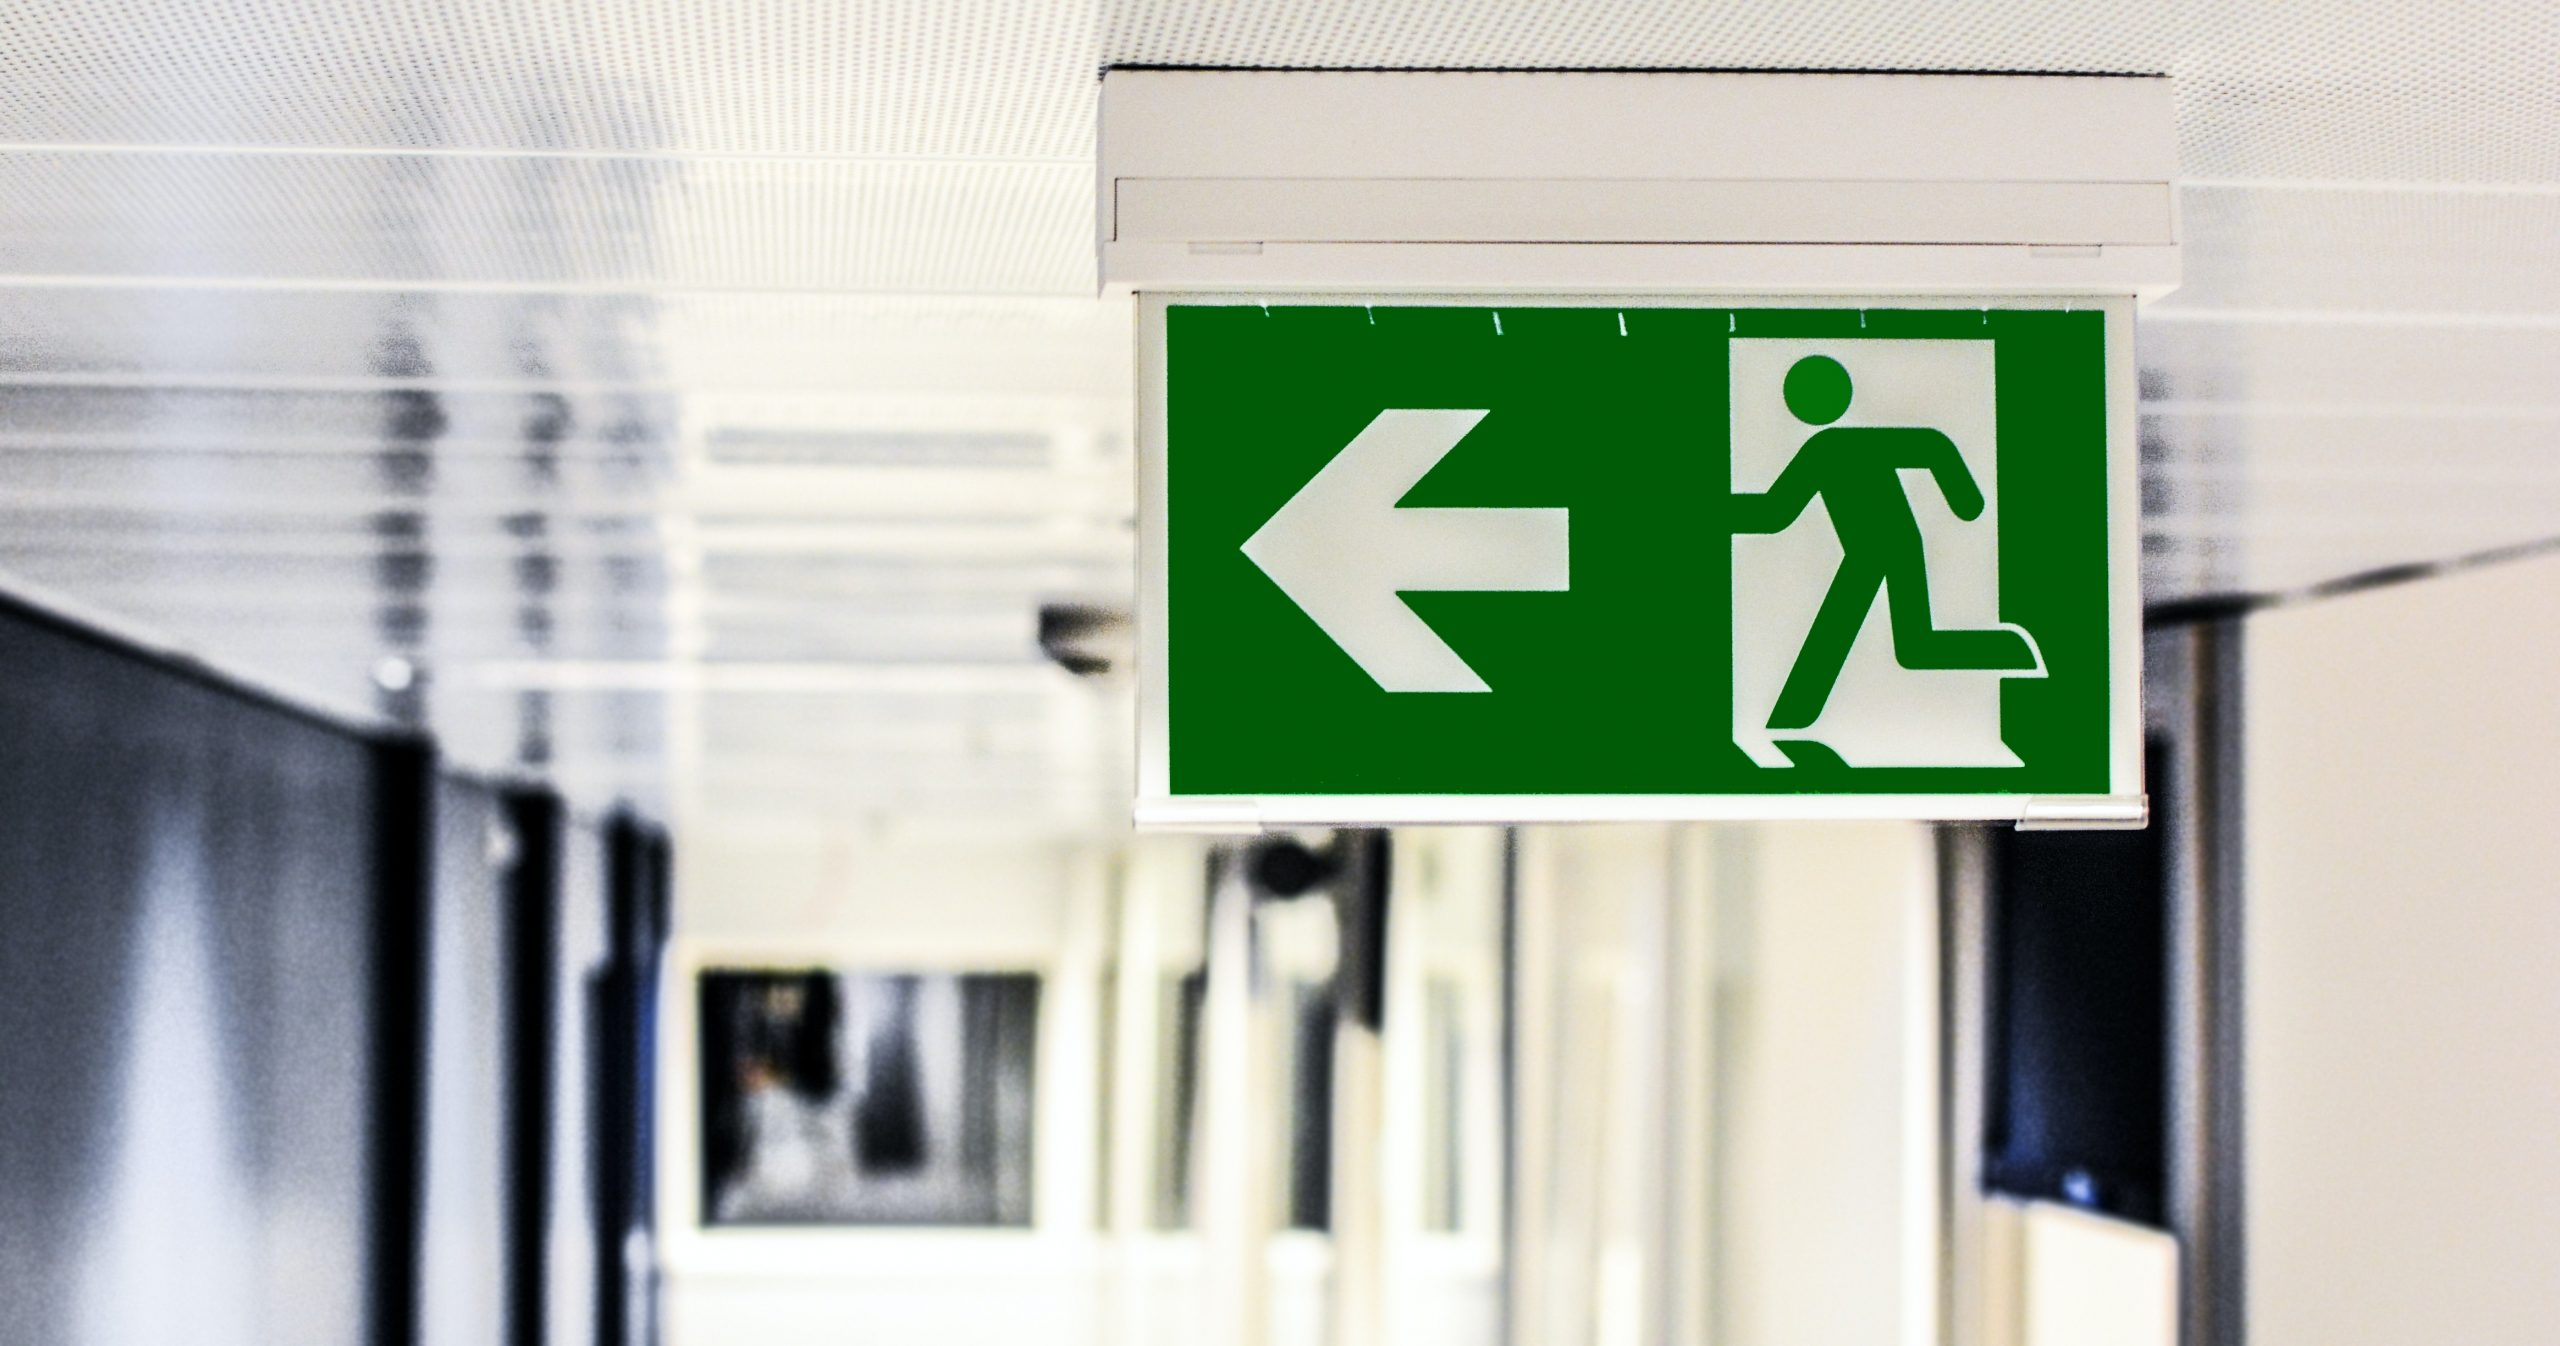 Exit sign - Paul Tyrer discusses Partial Exits in Growth Business